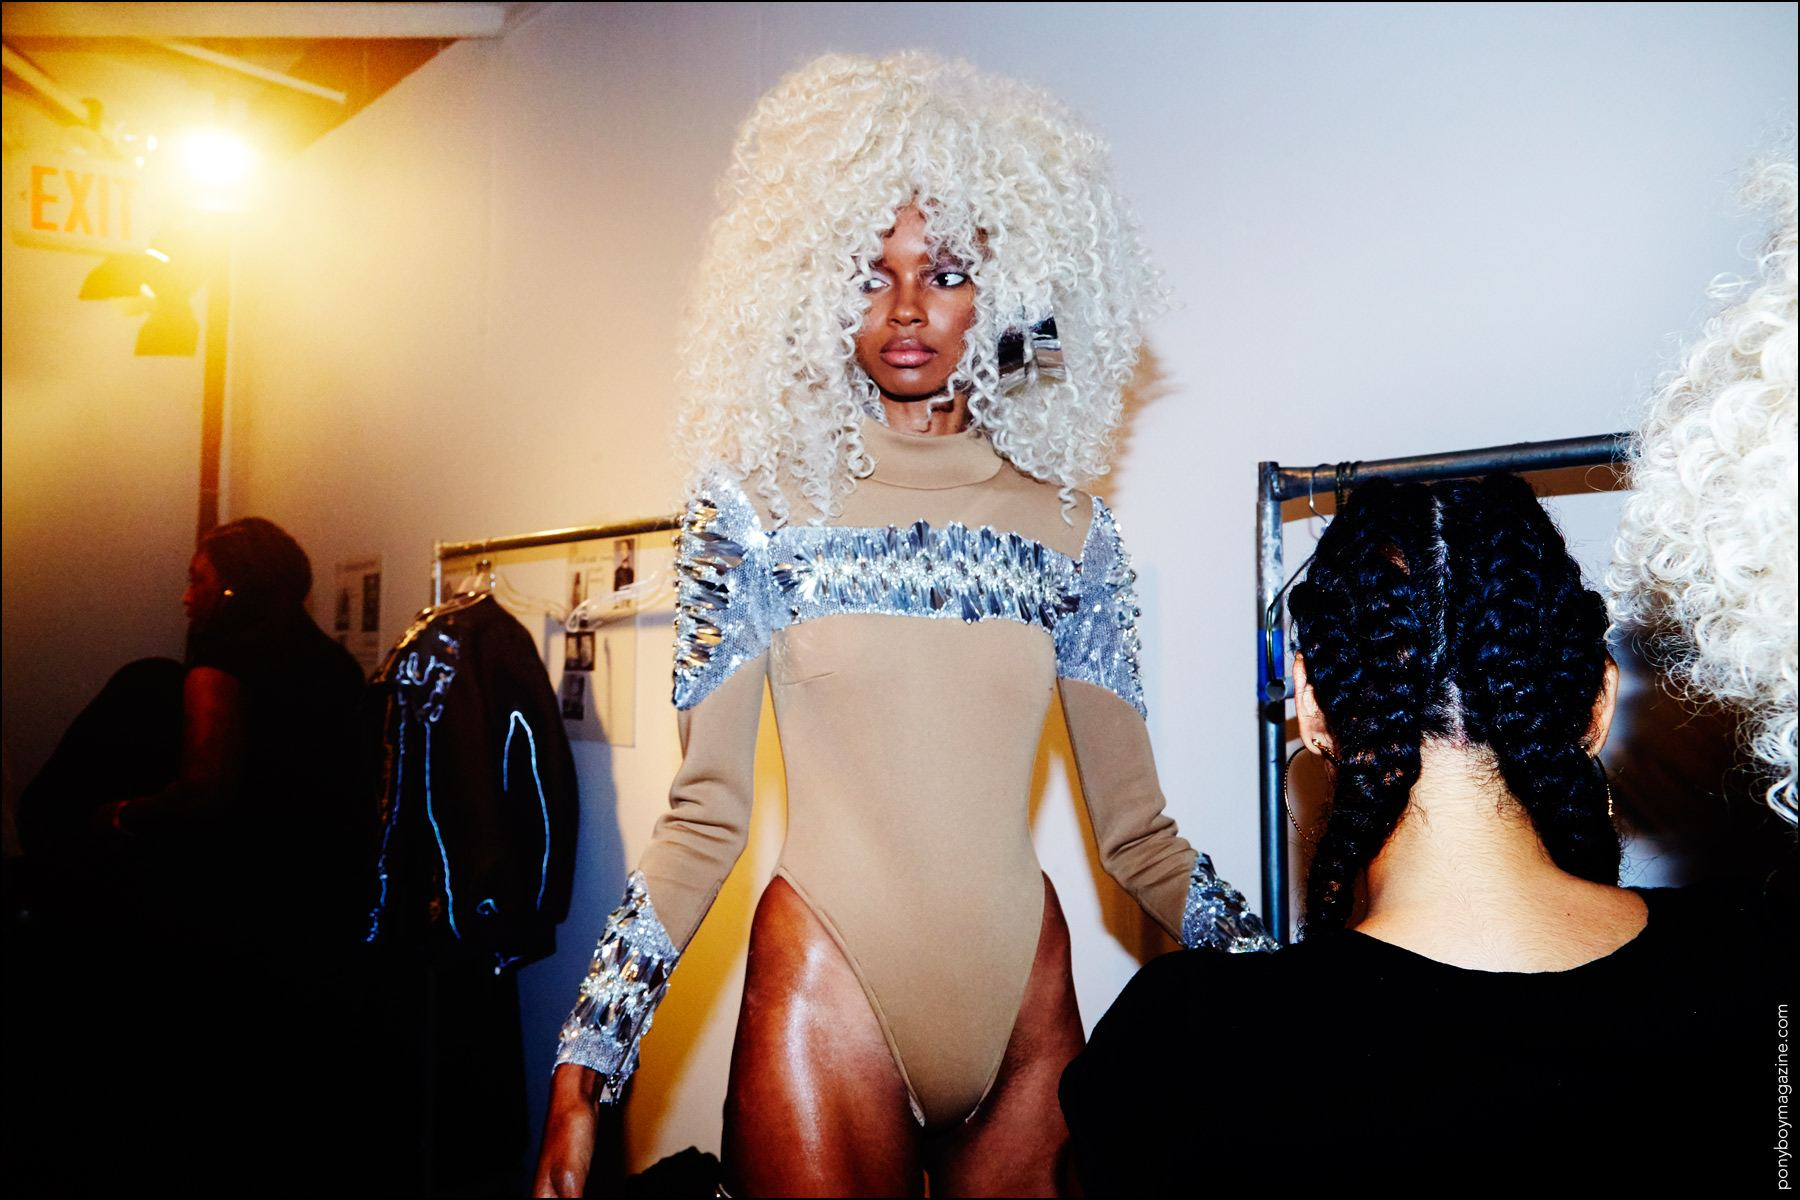 Model Djenice Duarte photographed getting dressed backstage at the Blonds Spring/Summer 2017 show at Milk Studios New York. Photographed by Alexander Thompson for Ponyboy magazine.